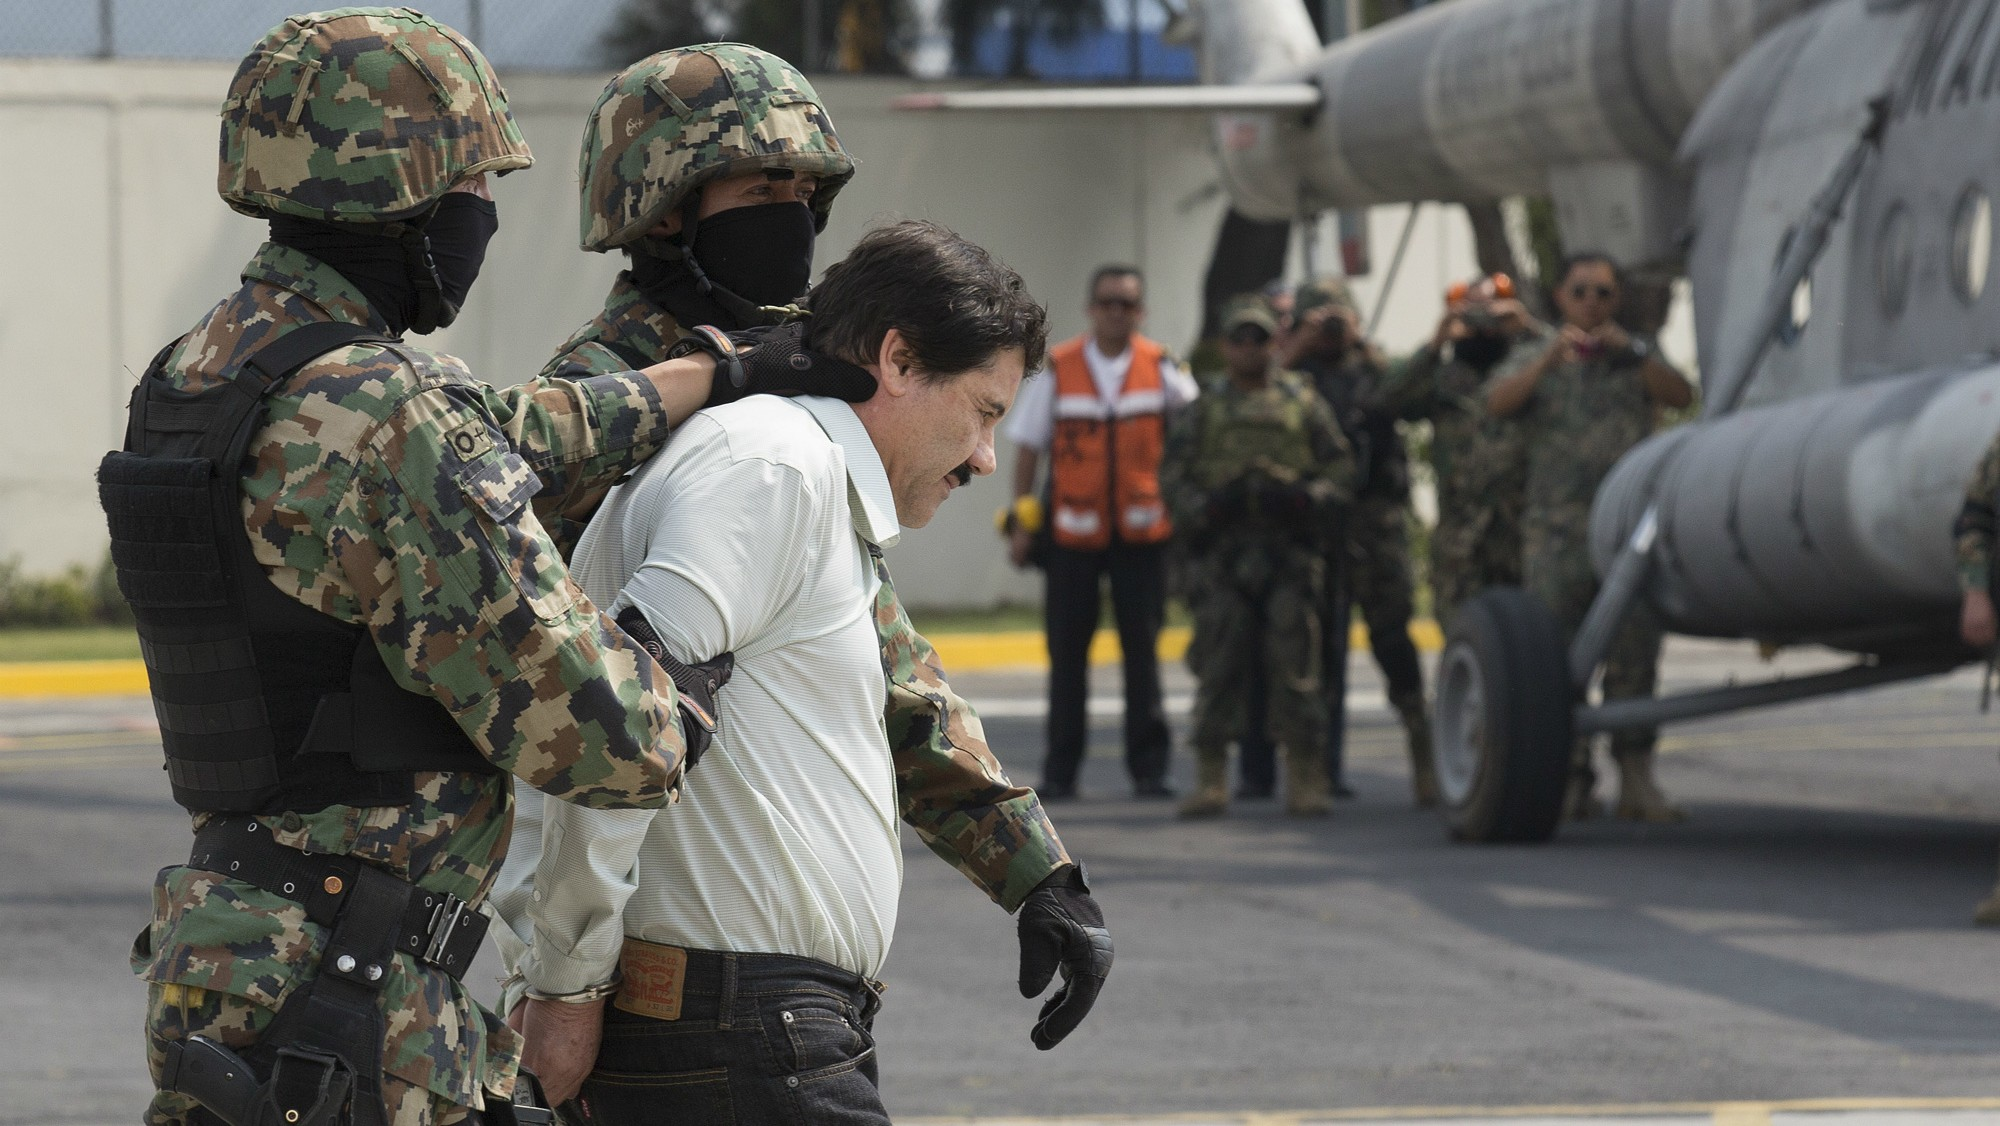 Mexican Judge Rules That El Chapo Can Be Extradited to the US to Face Drug Charges